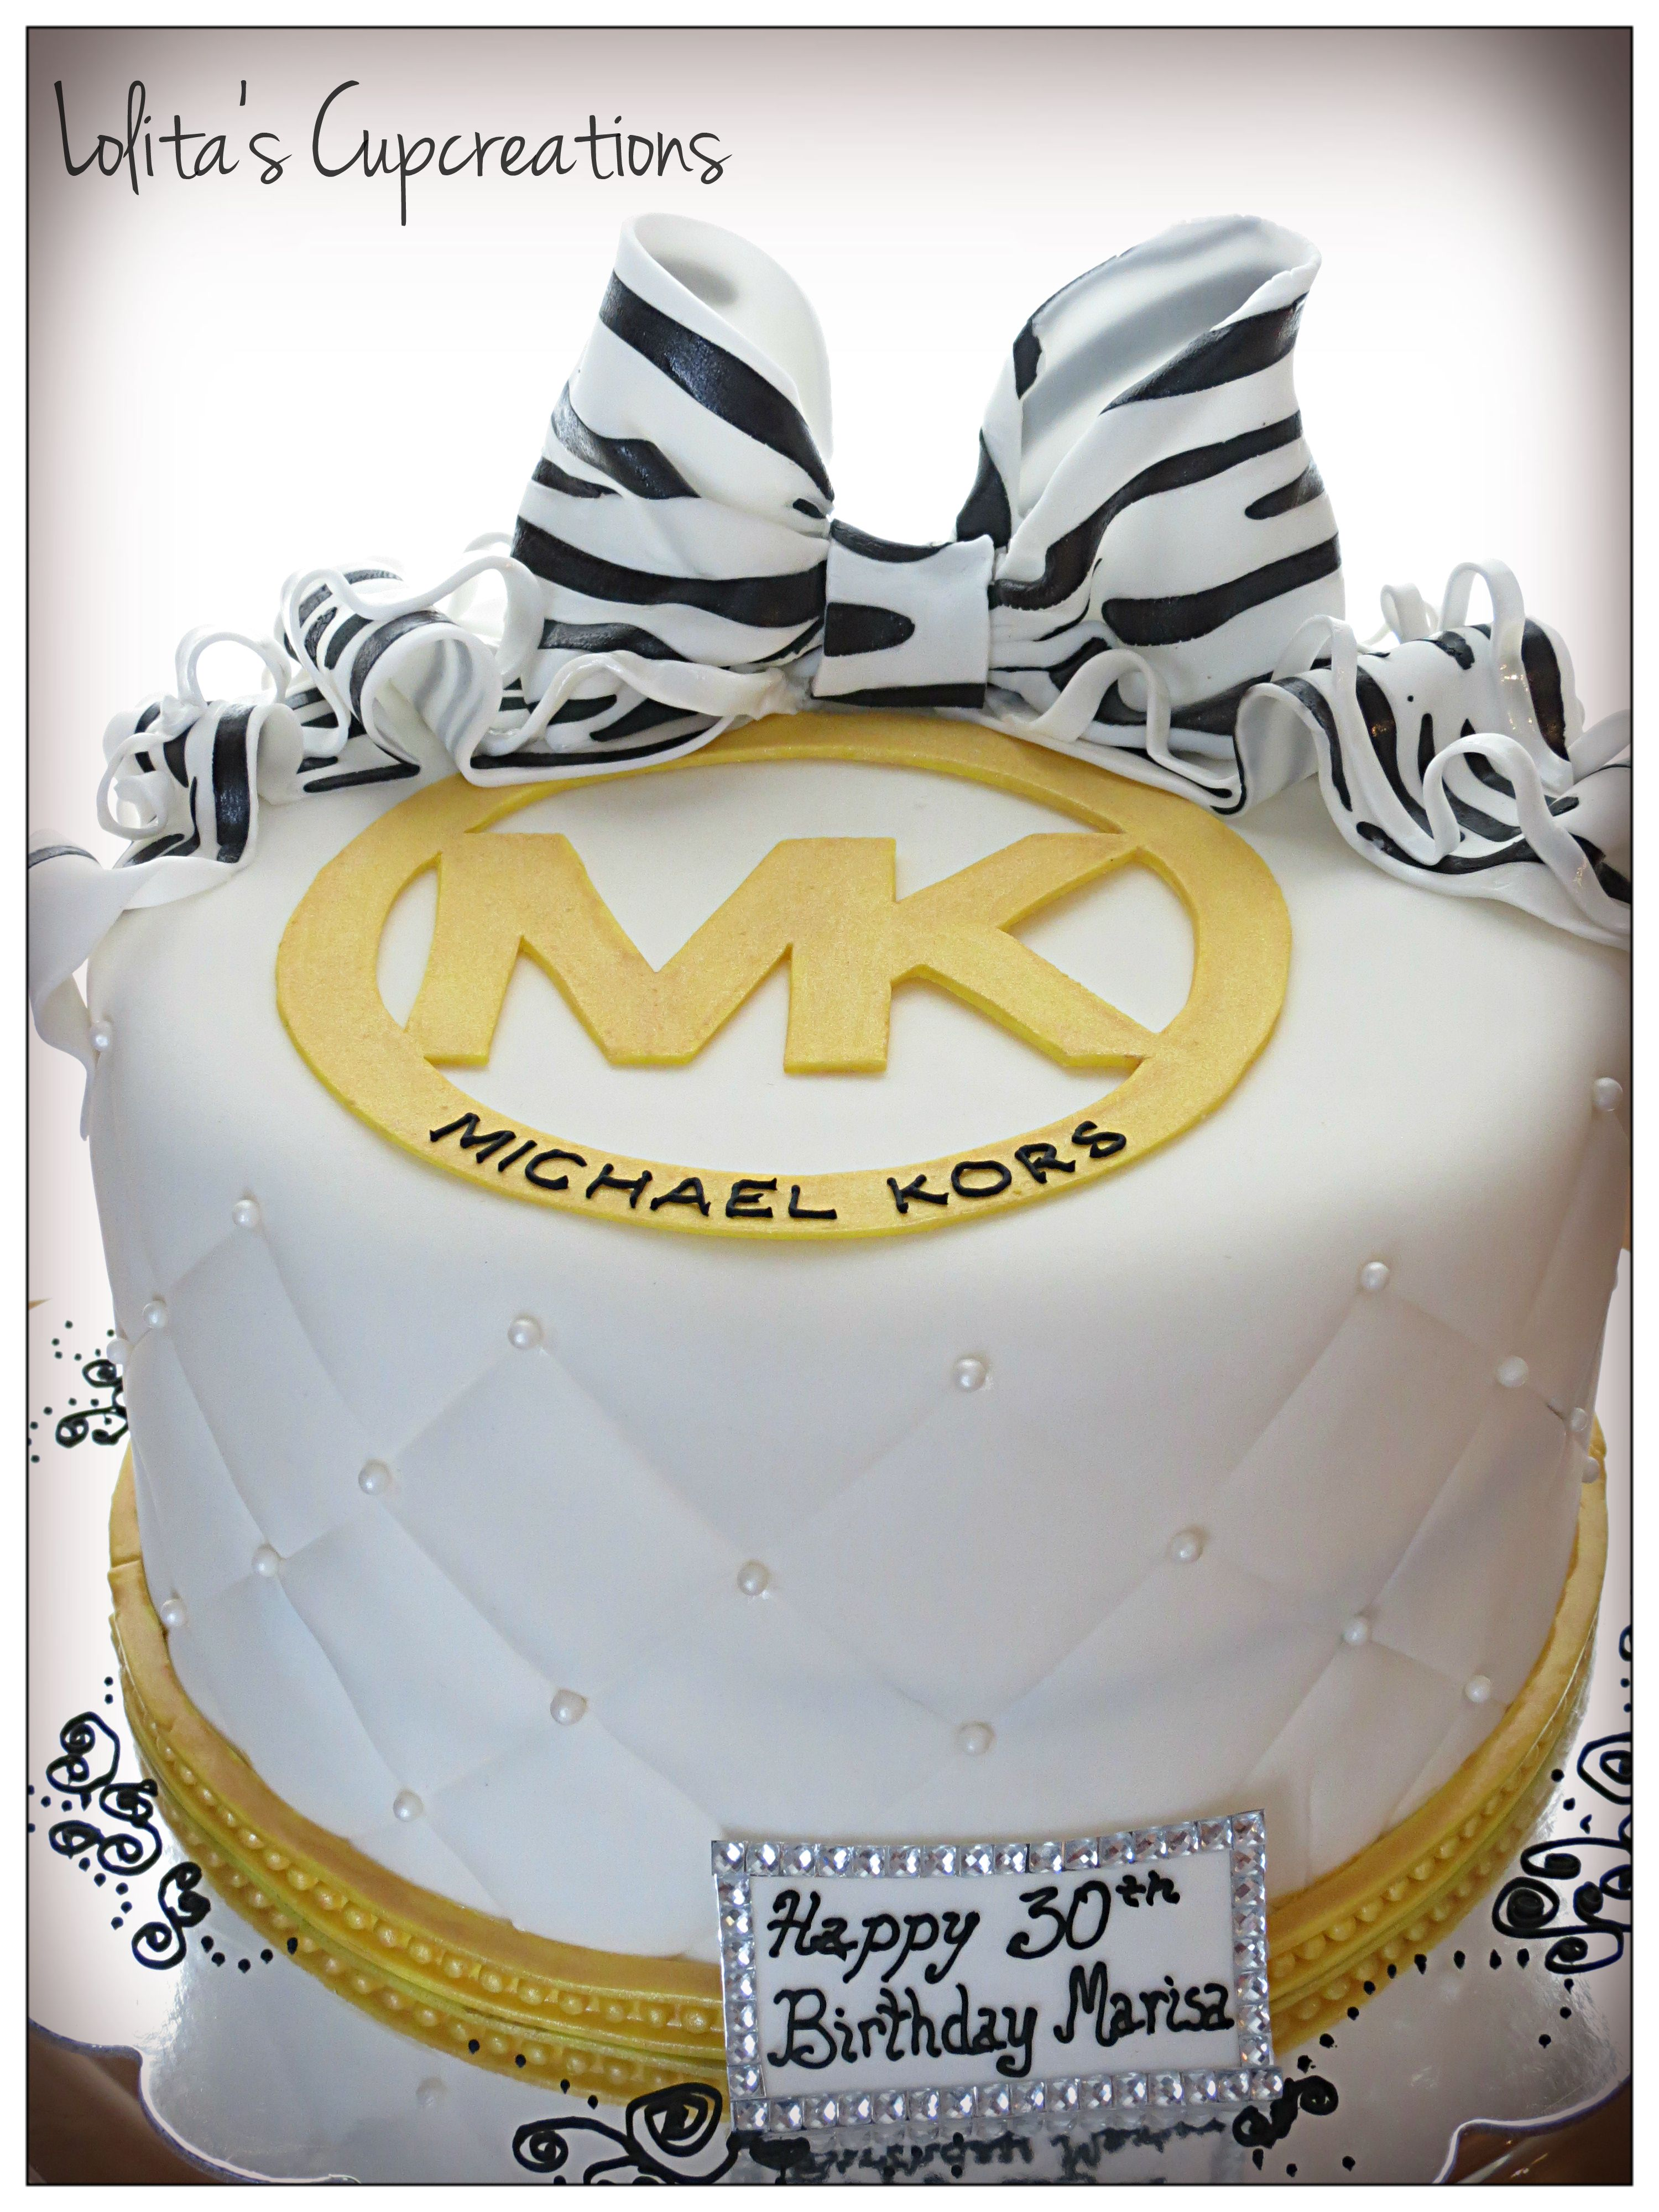 39d2d2edf Michael Kors Inspired cake by Lolita's Cupcreations | Oven ...